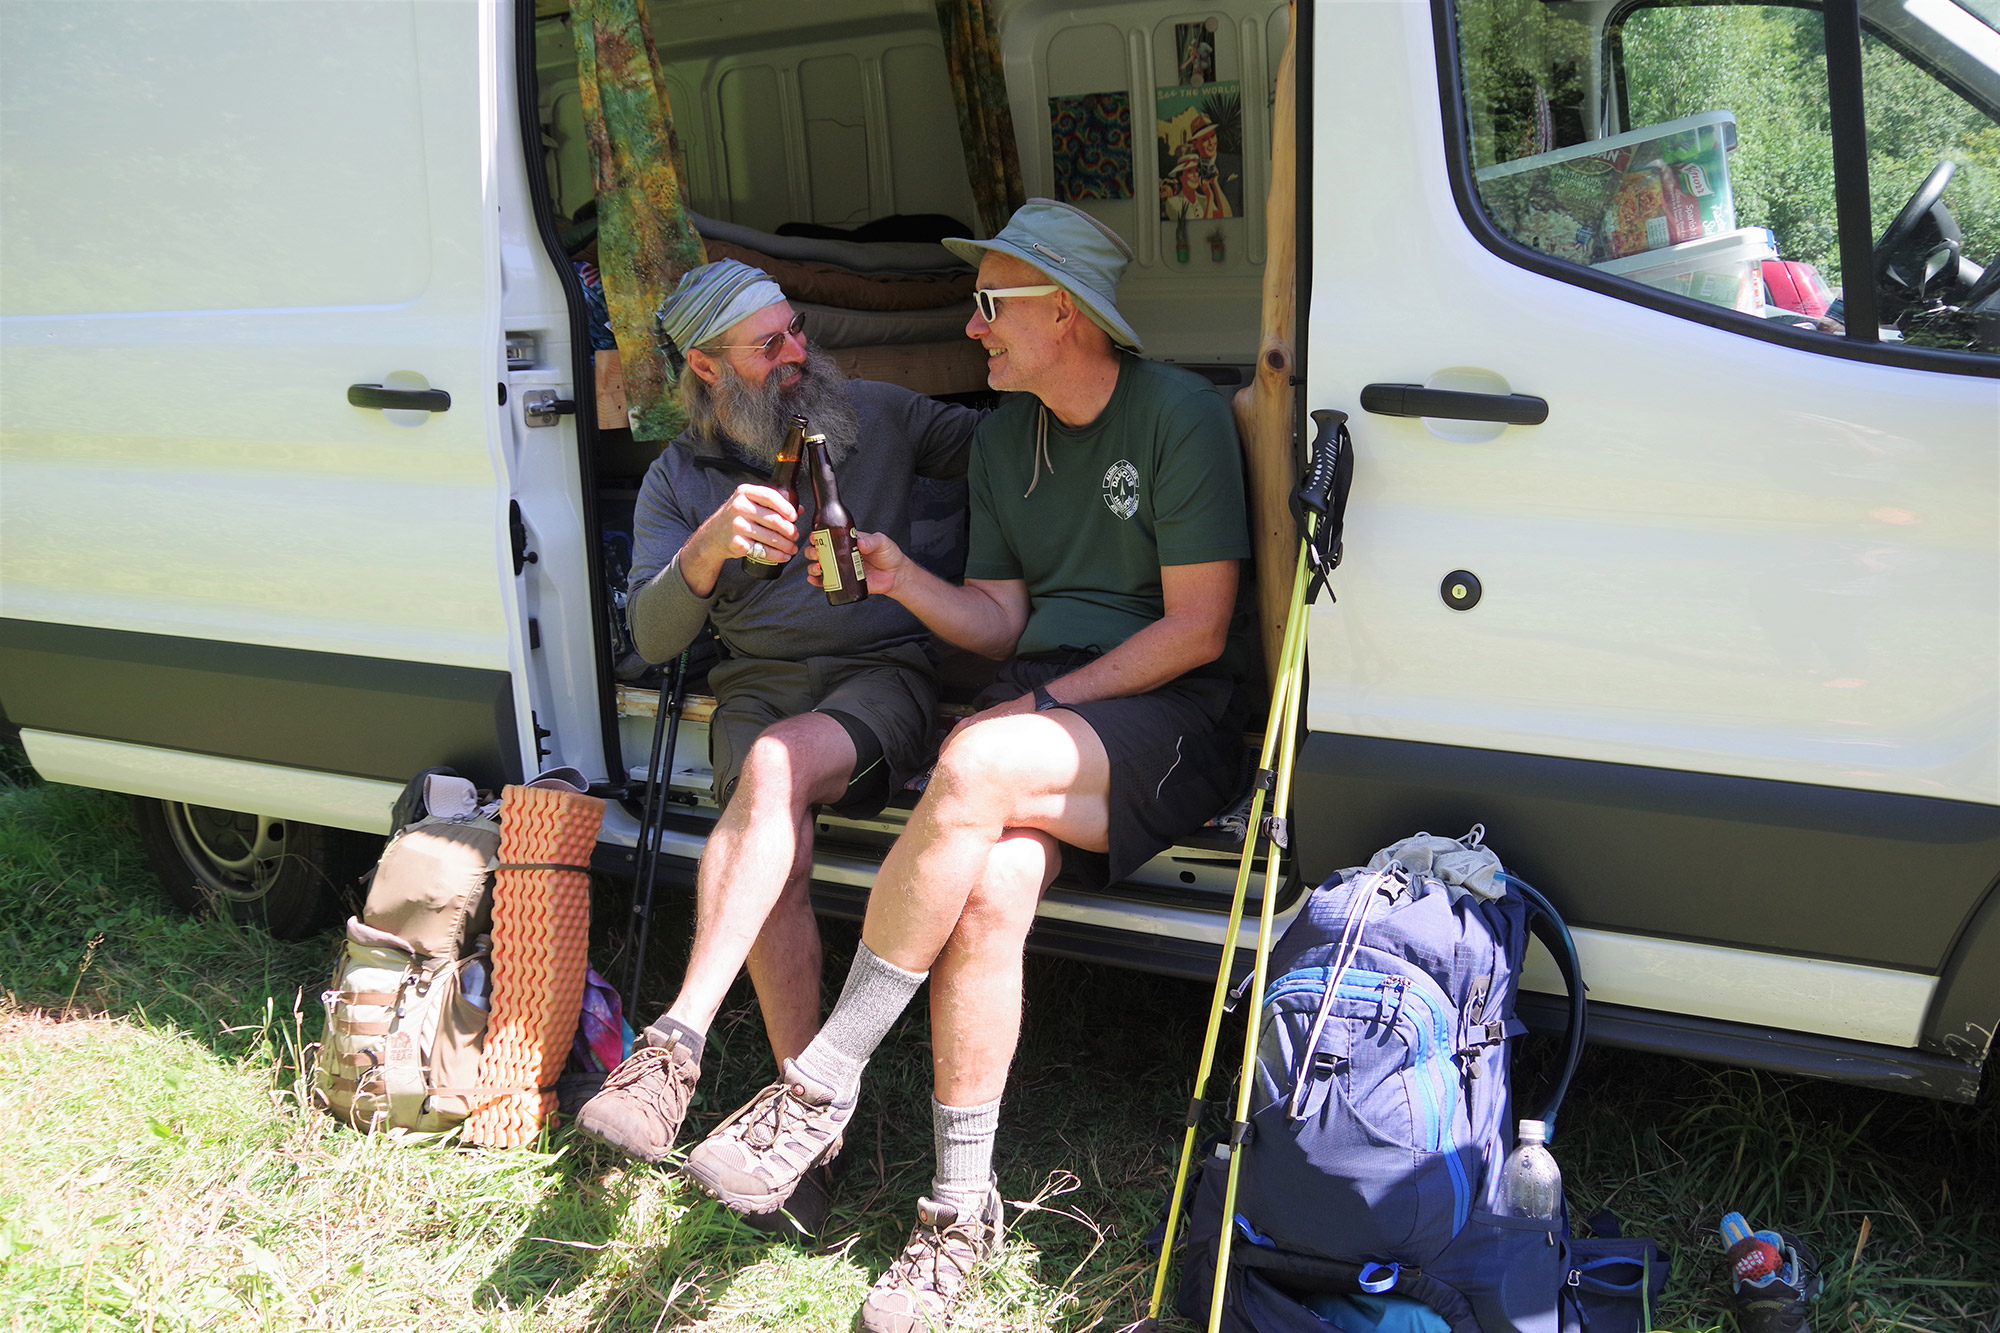 Nothing better than a cold beer after several days on the trail. | Credit: Karen Miller